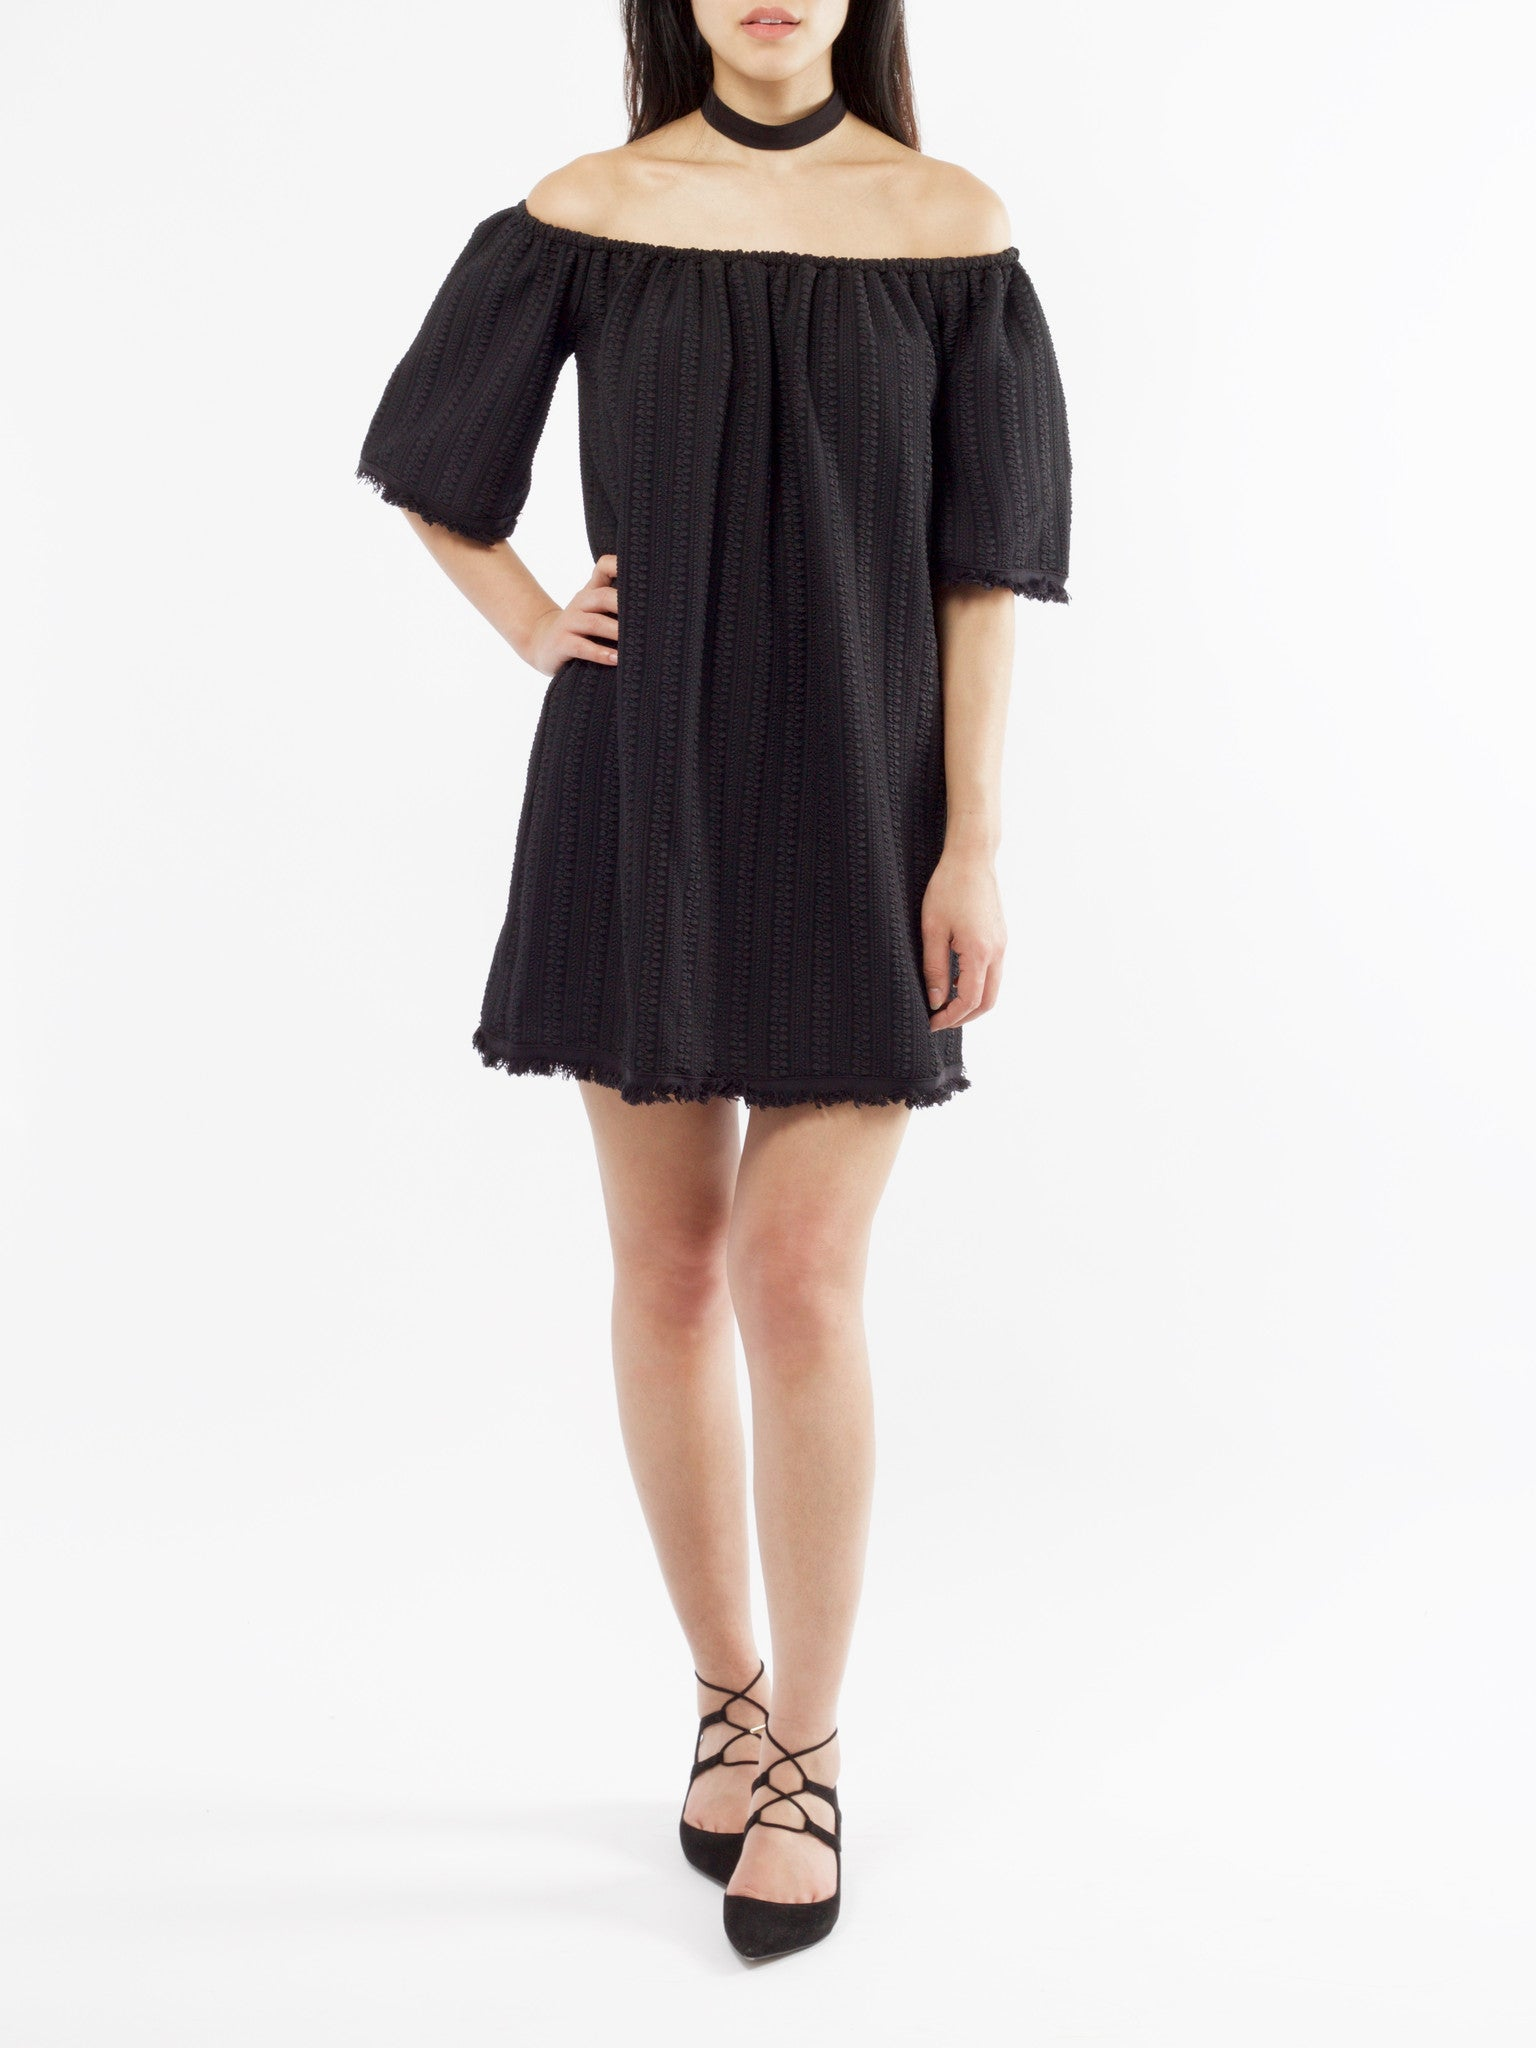 Adina Off Shoulder Dress - PRADEGAL